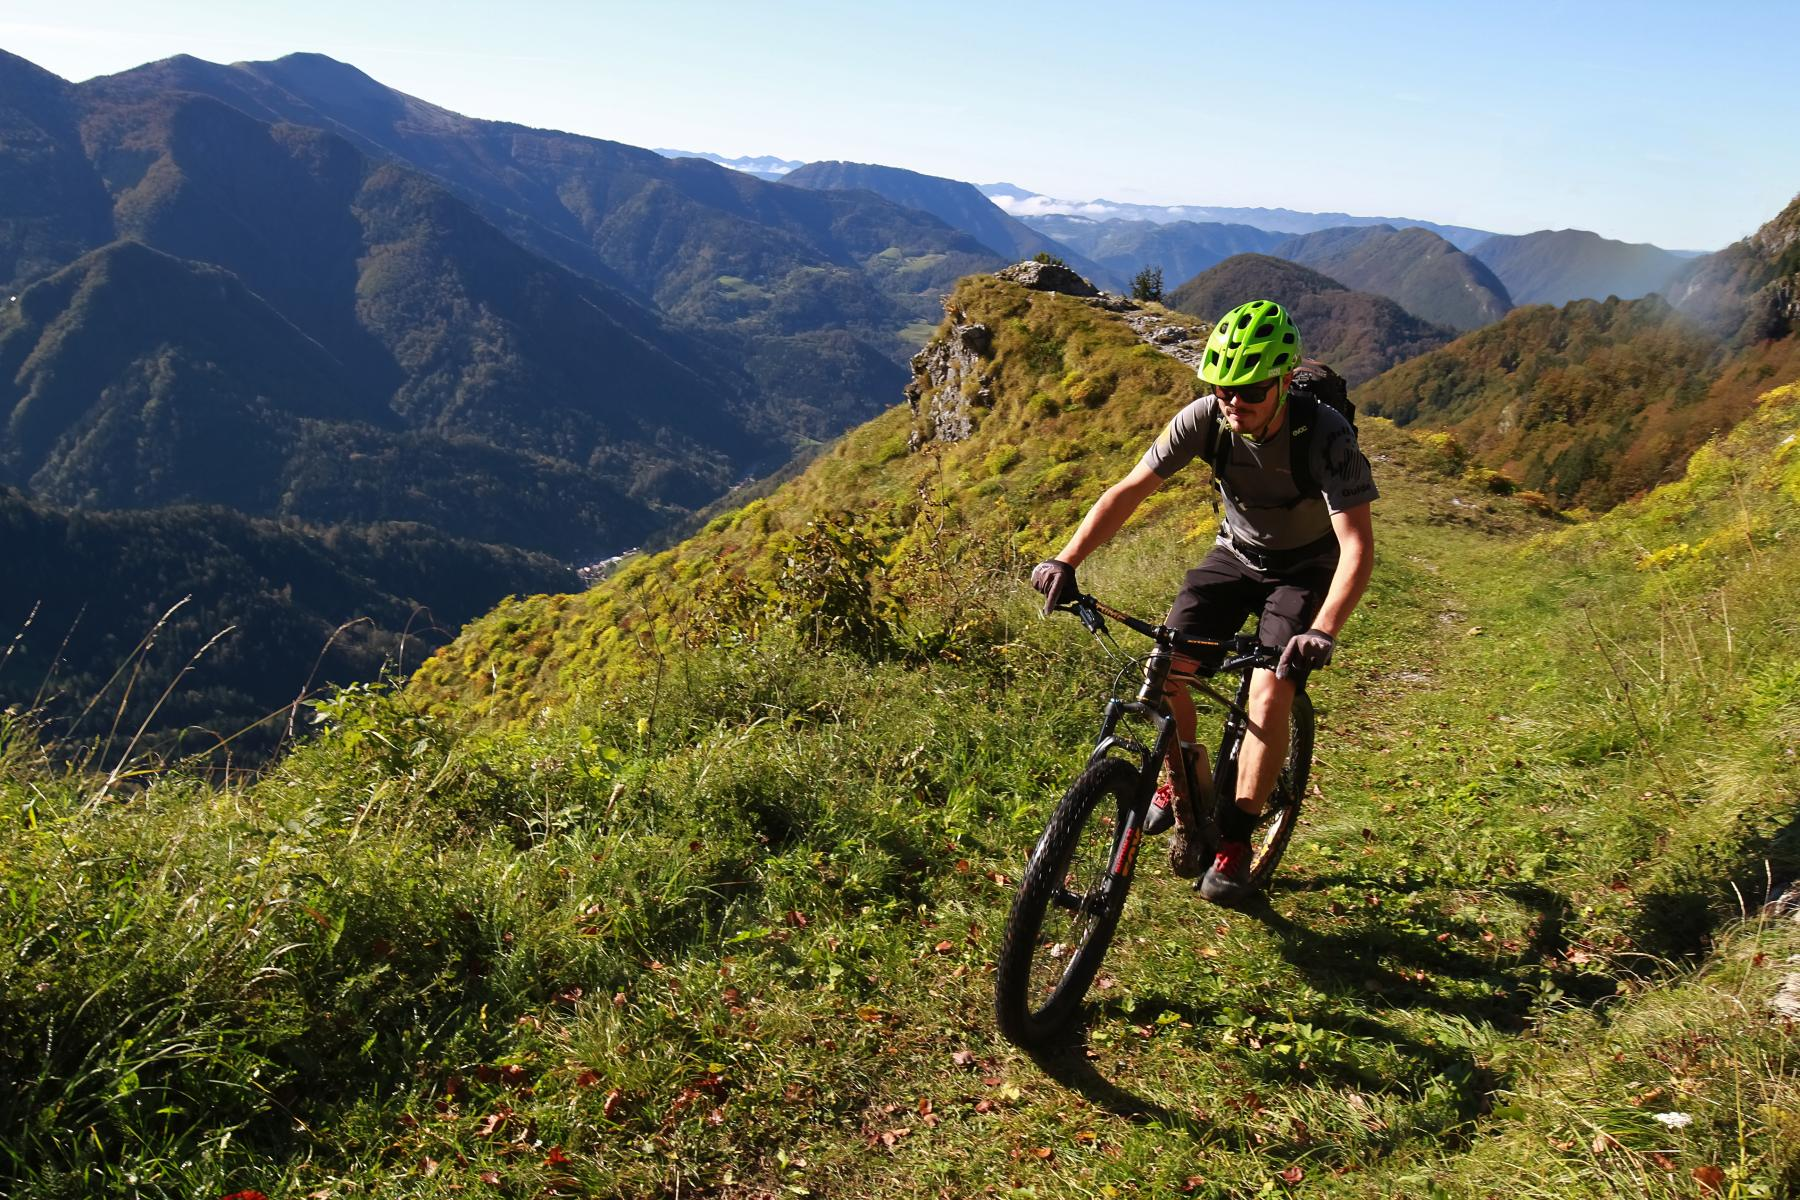 Our MTB guide Mark in action